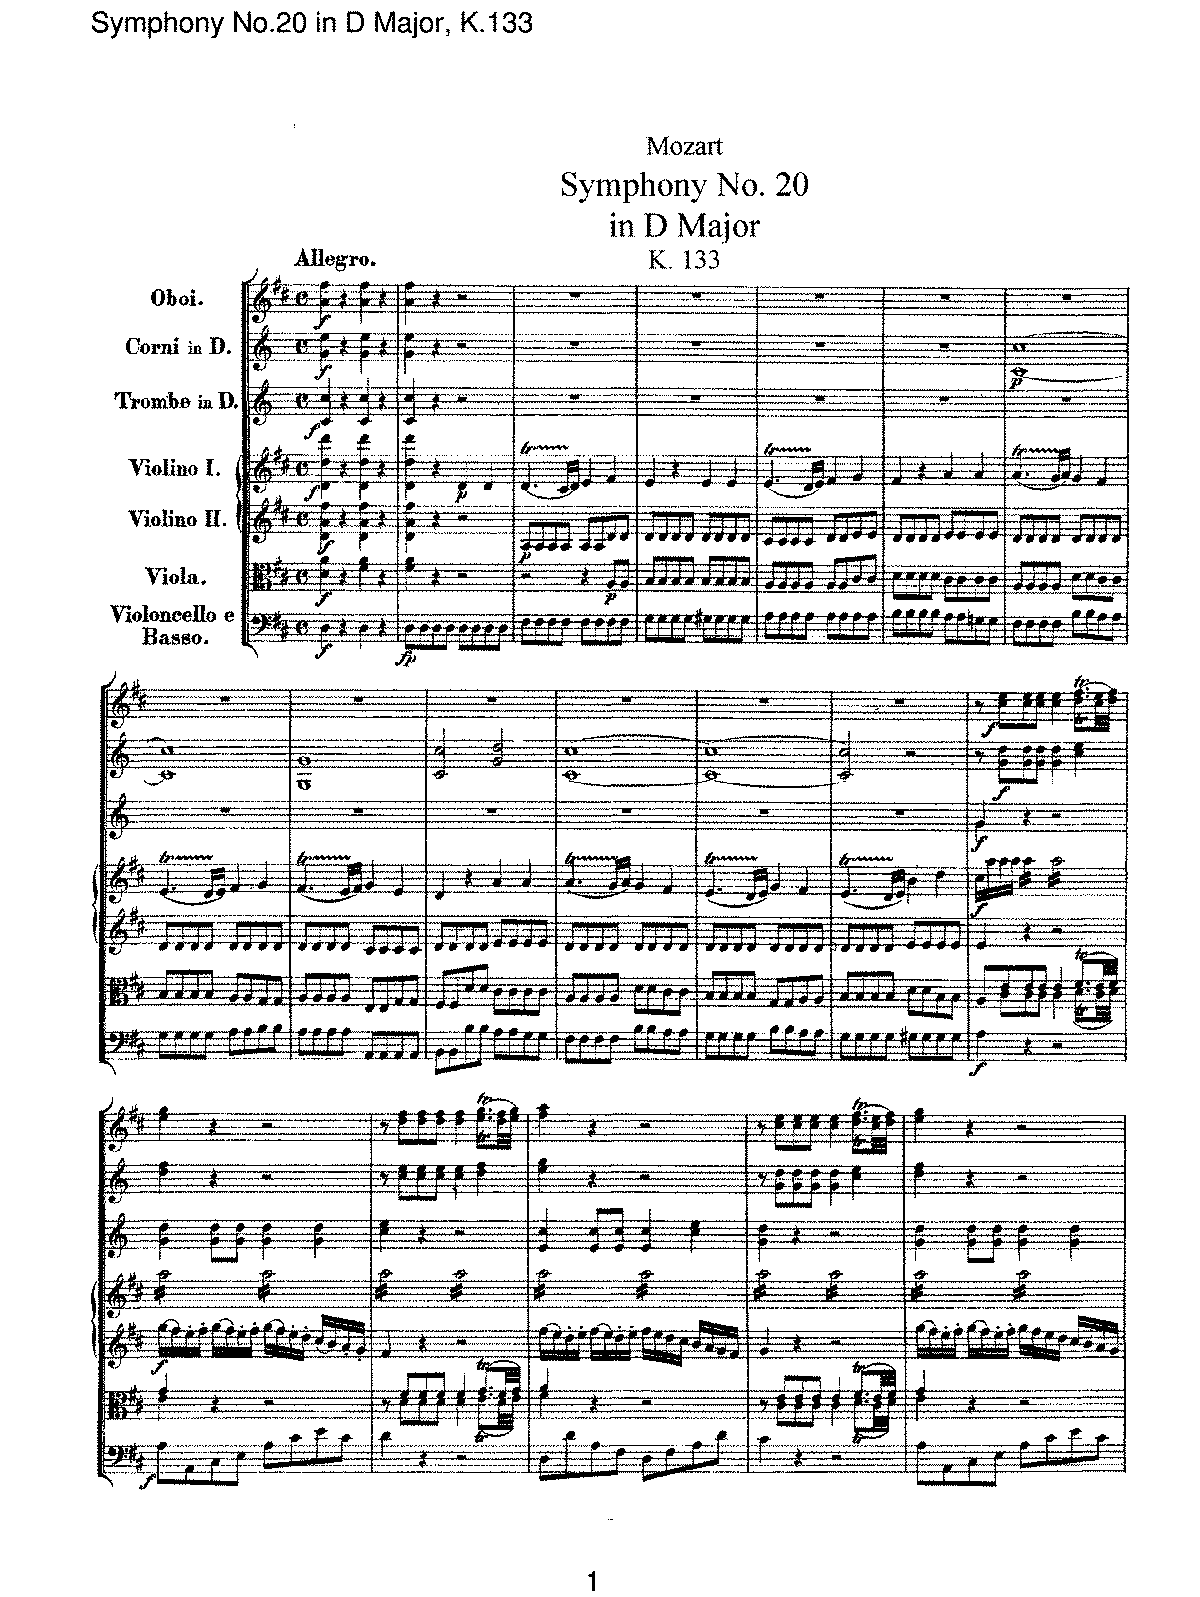 Mozart - Symphony No 20 in D Major, K133.pdf